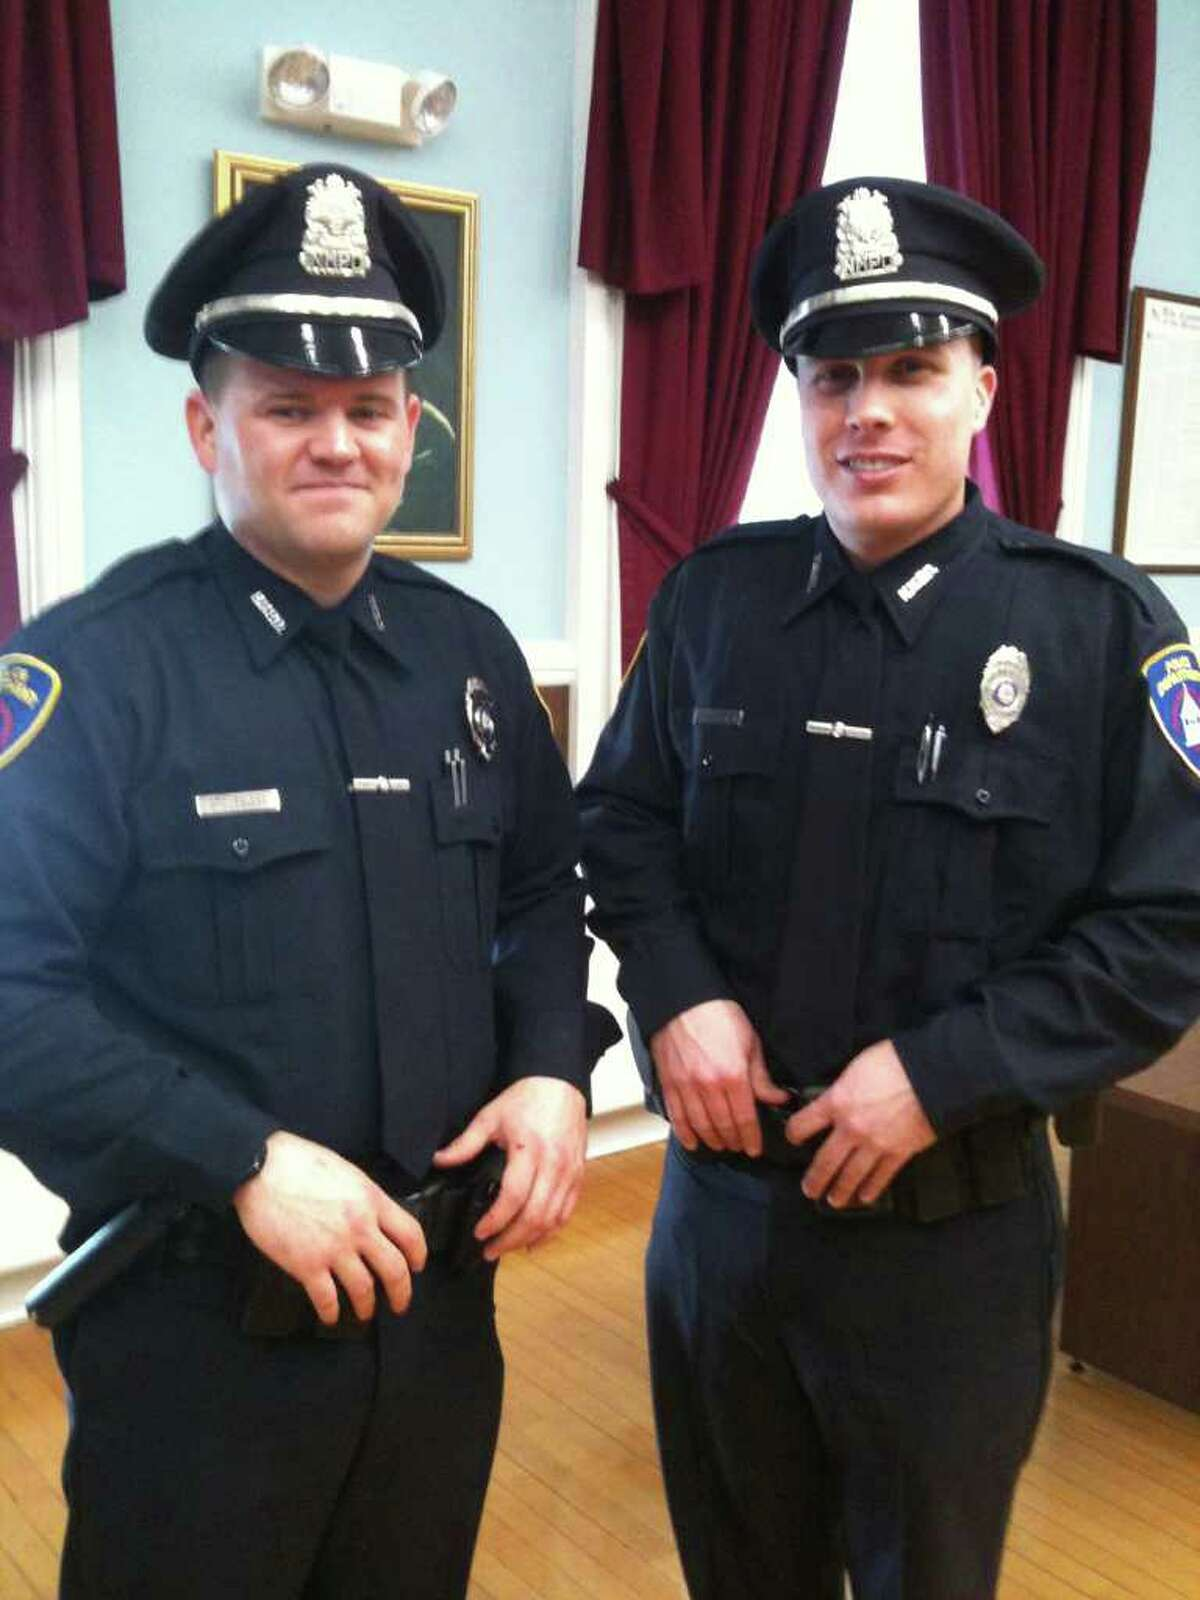 Brian Peloso, left, and David Petersen were sworn in as New Milford Police officers.